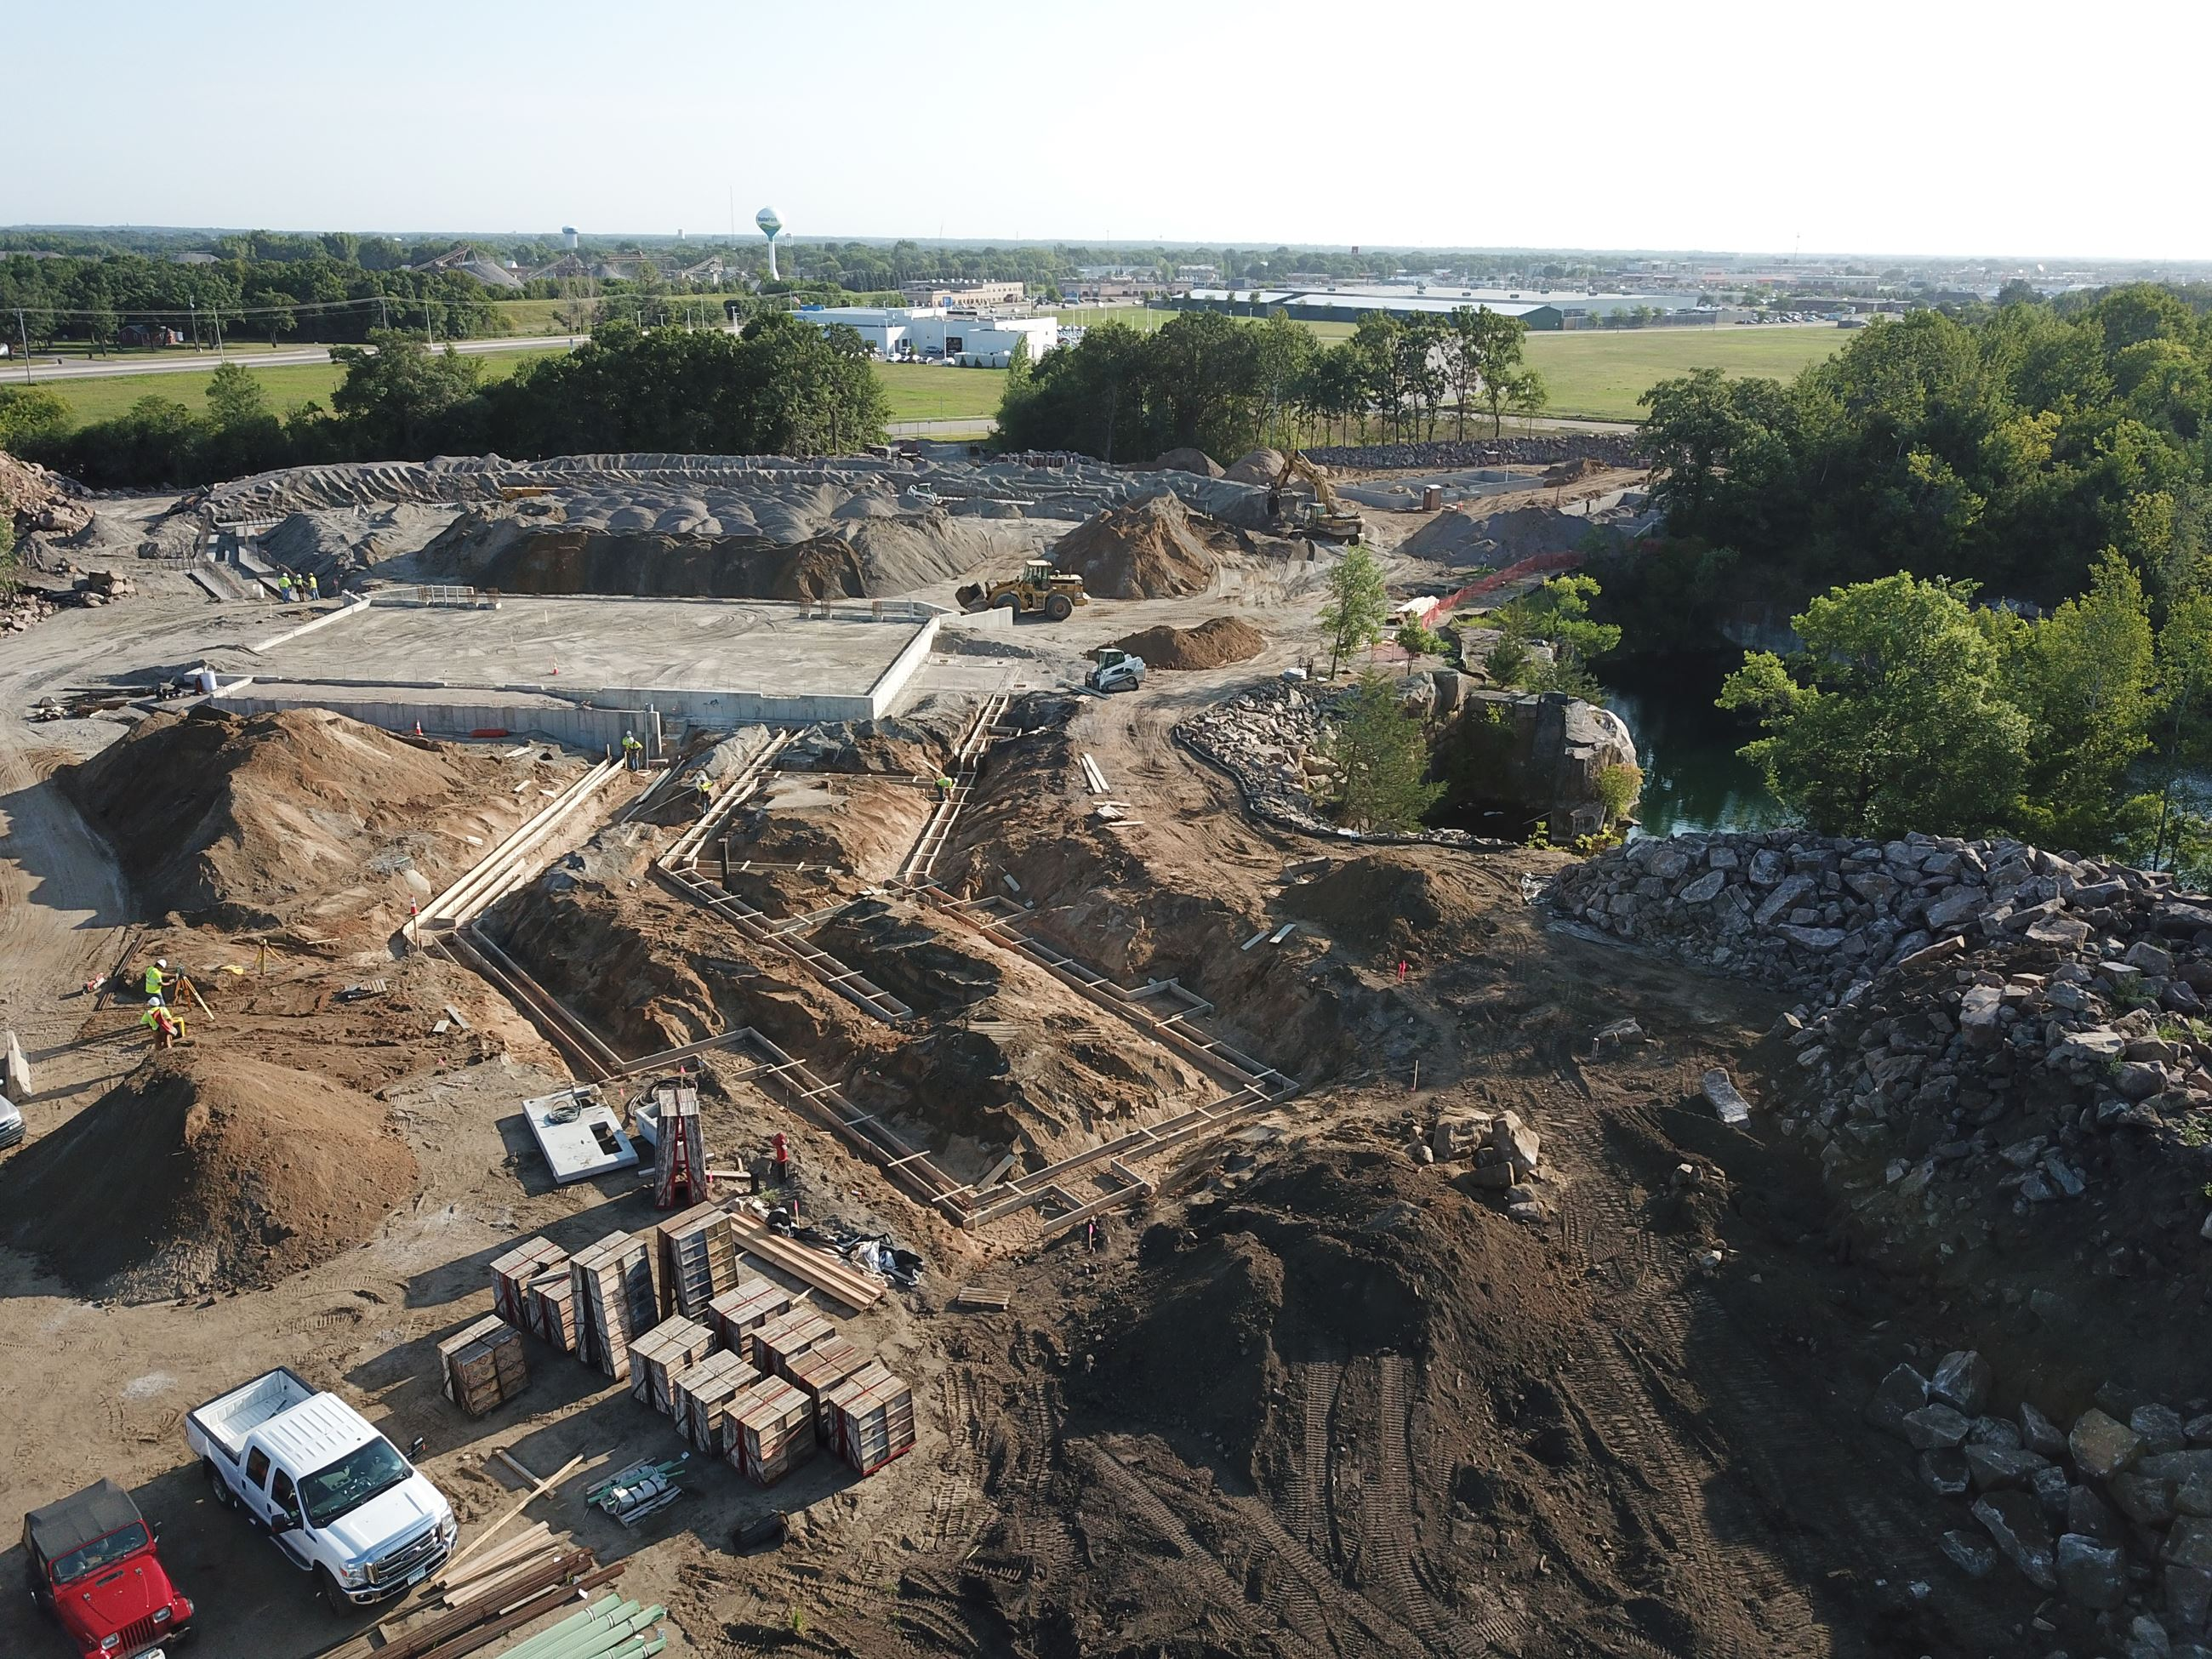 Overhead view of the Amphitheater construction site showing the backstage area